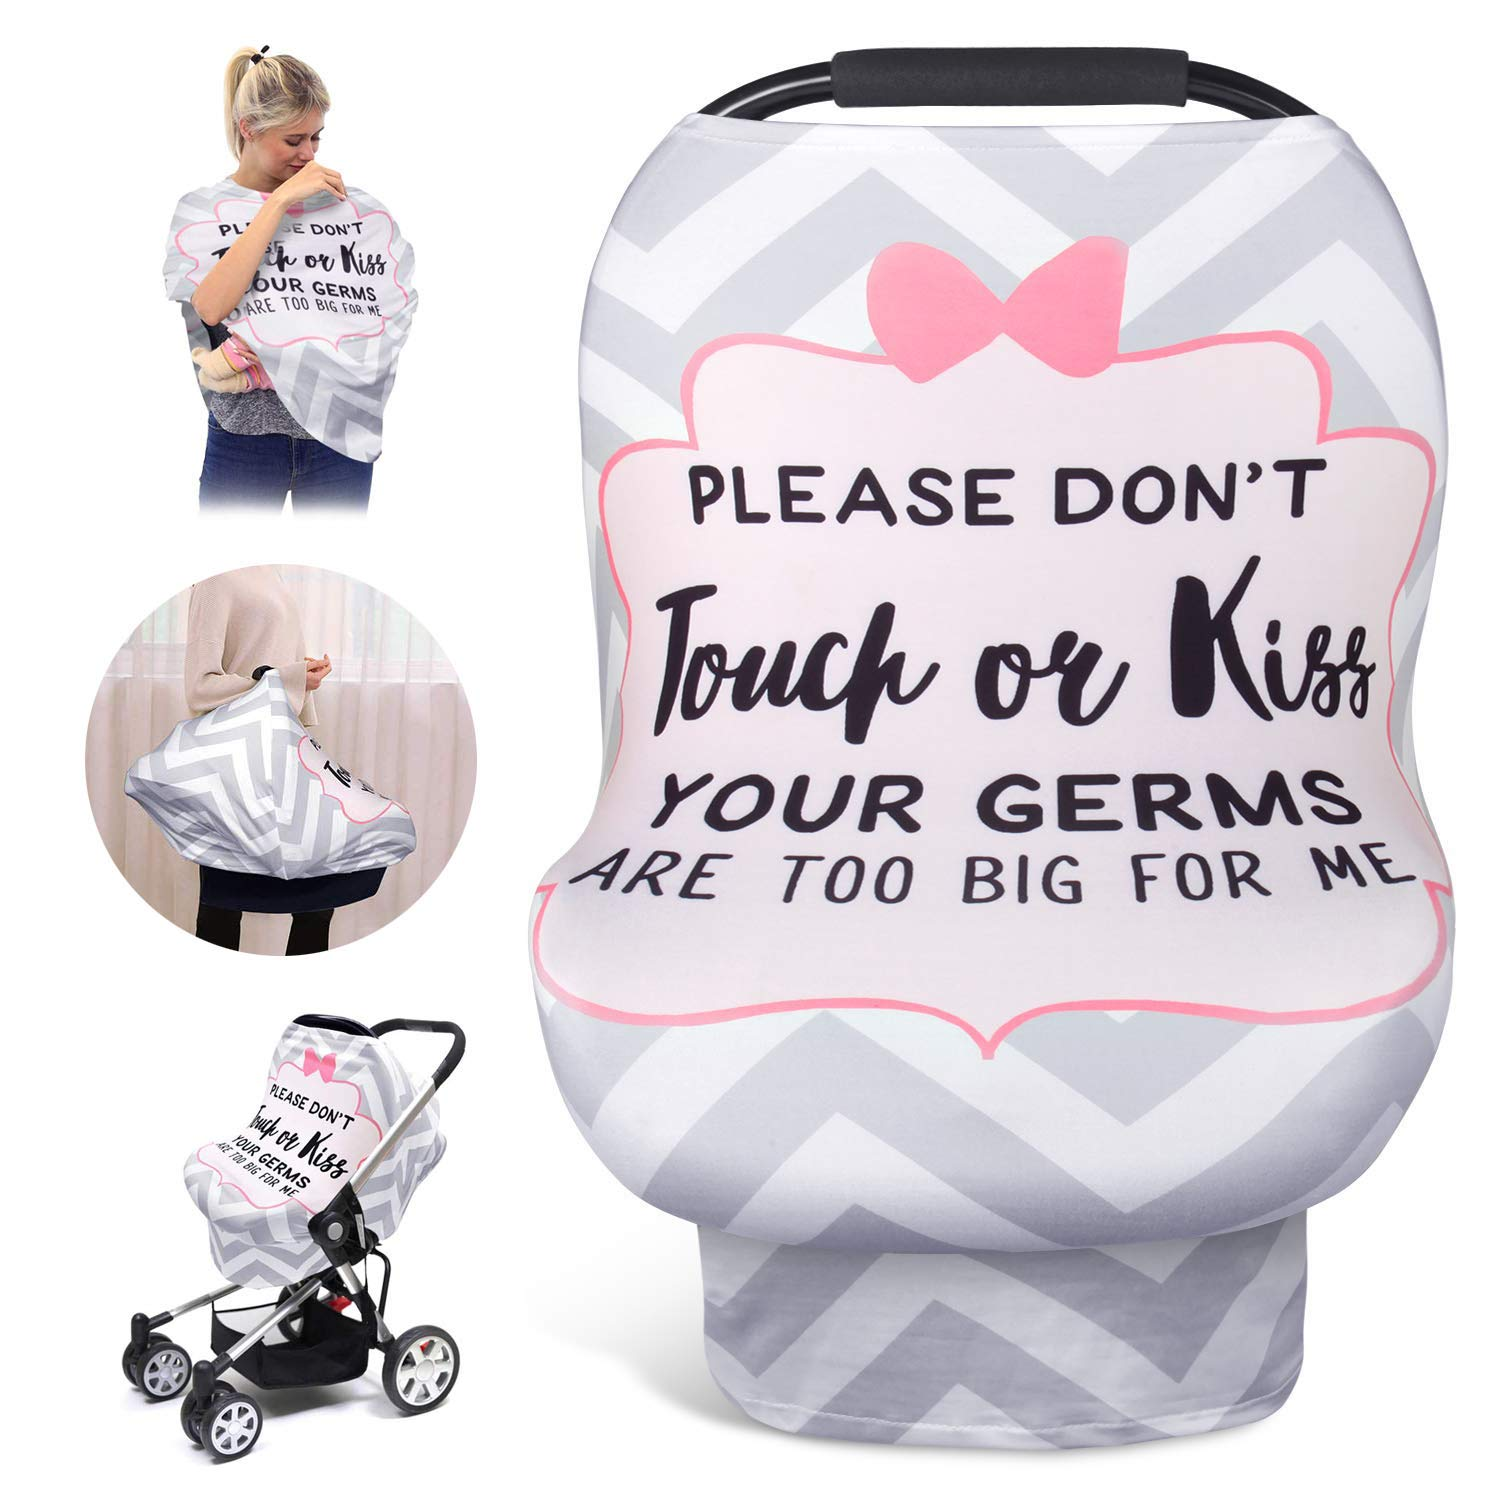 Nursing Cover for Baby Breastfeeding, Car Seat Covers for Babies, Stretchy Newborn Car Seat Canopy, Soft Breathable Infant Stroller/Shopping Cart/High Chair Cover, Boys and Girls Shower Gift